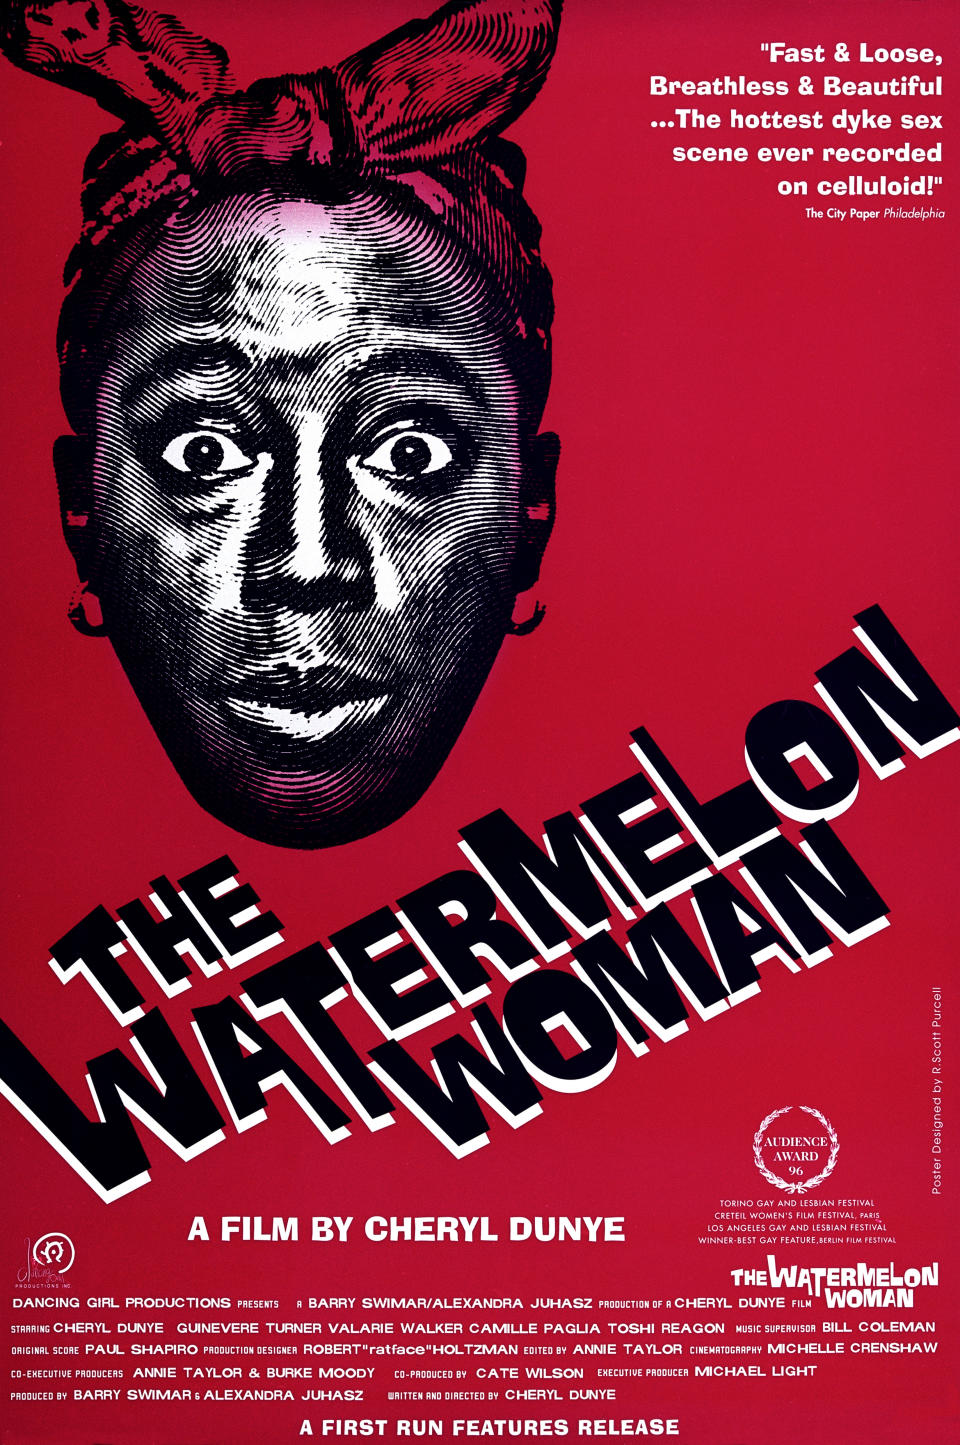 One Sheet movie poster advertises 'The Watermelon Woman' (Dancing Girl Productions), a lesbian drama directed by and starring Cheryl Dunye, Philadelphia, Pennsylvania, 1996. (Photo by John D. Kisch/Separate Cinema Archive/Getty Images)